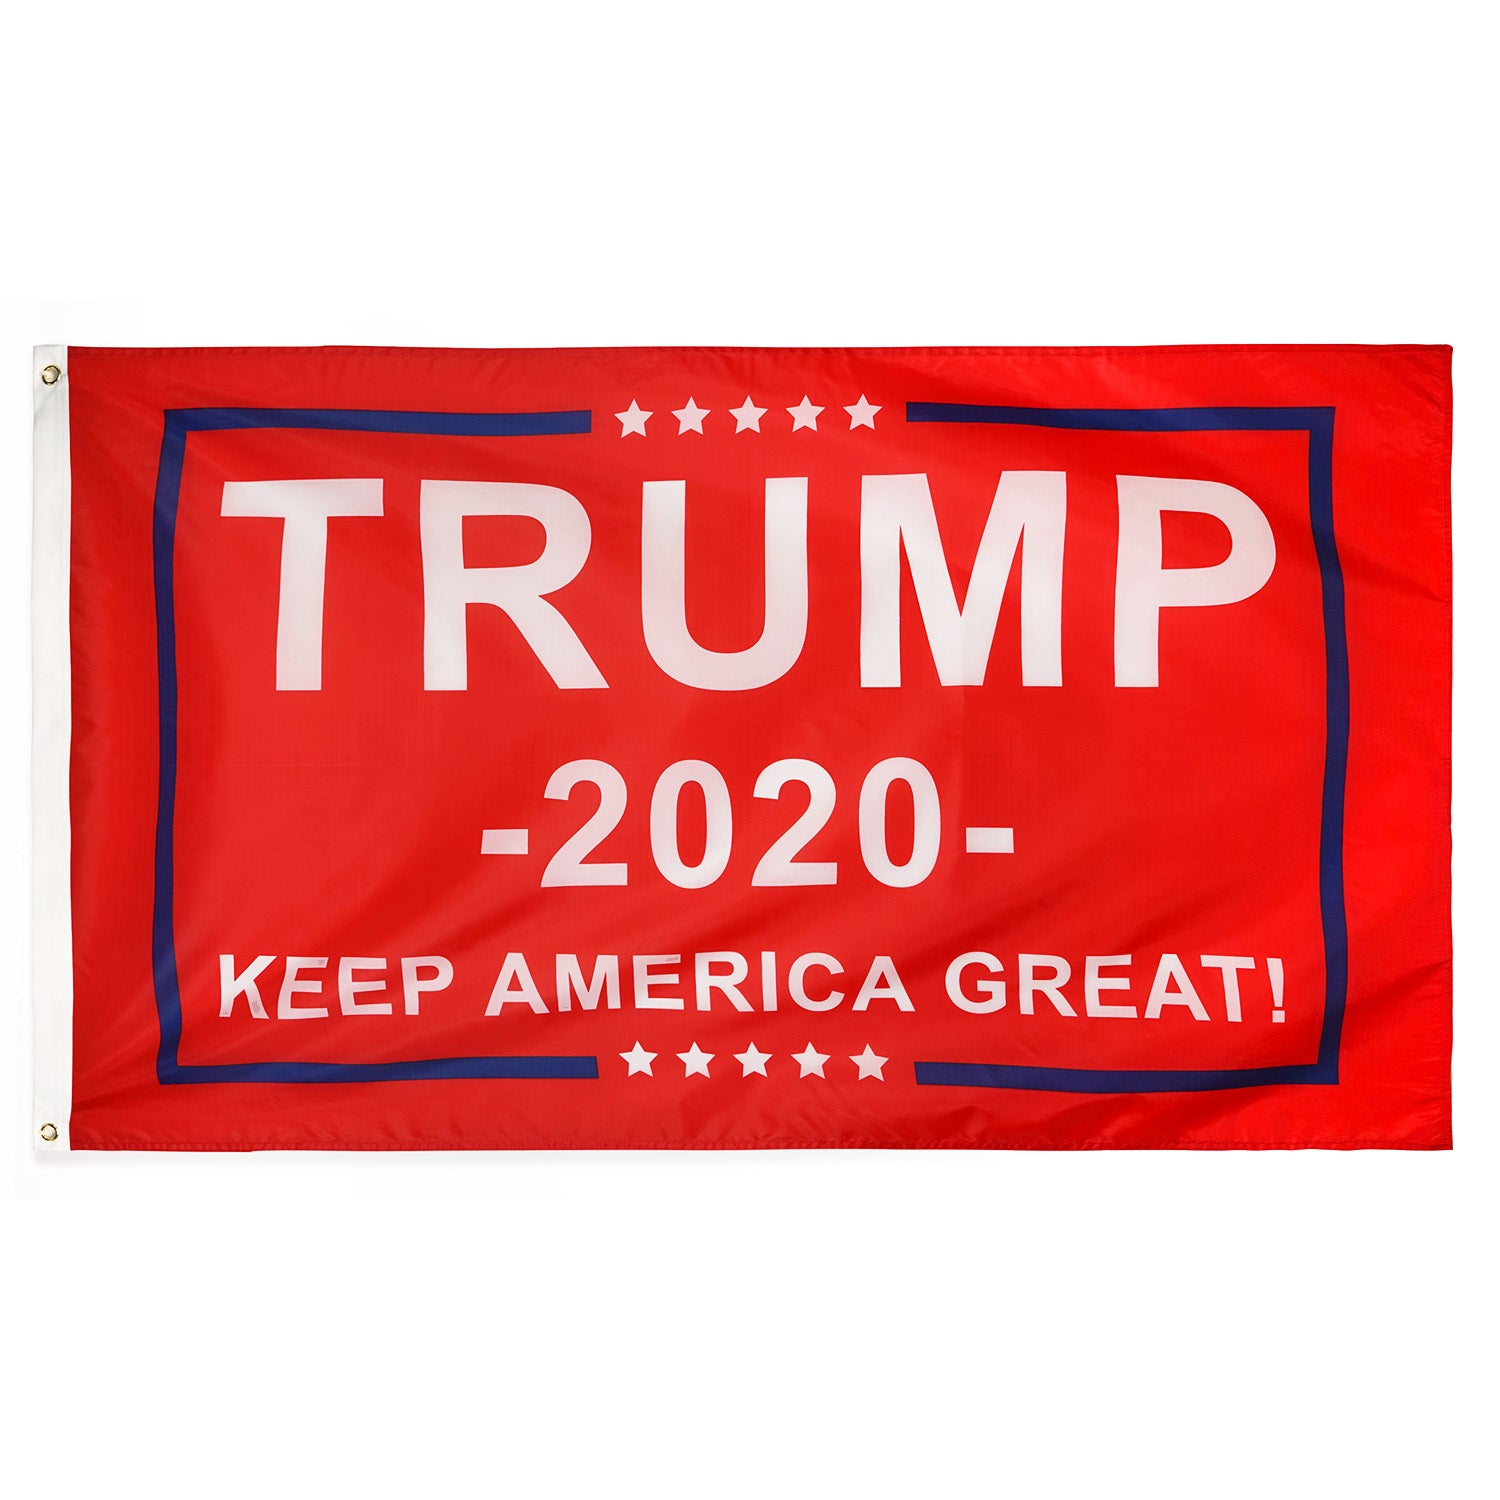 RED Trump 2020 Flag - Keep America Great! - 3 ft x 5 ft